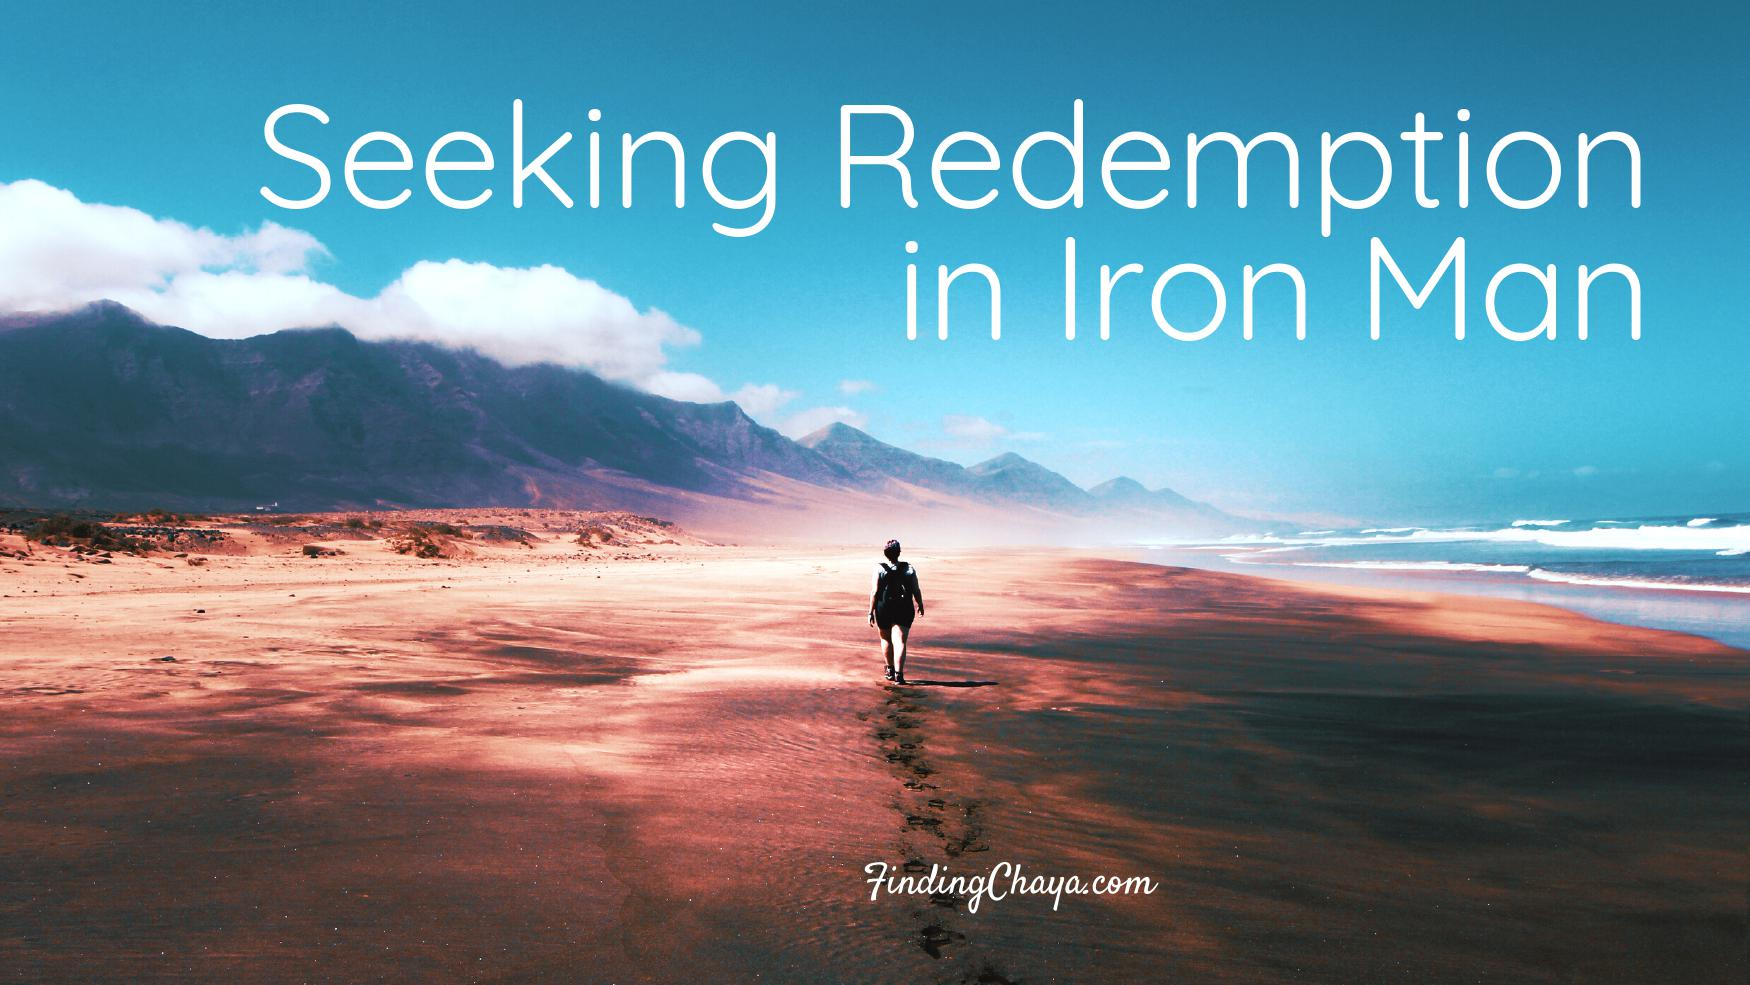 The Marvel Lockdown || Seeking Redemption in Iron Man